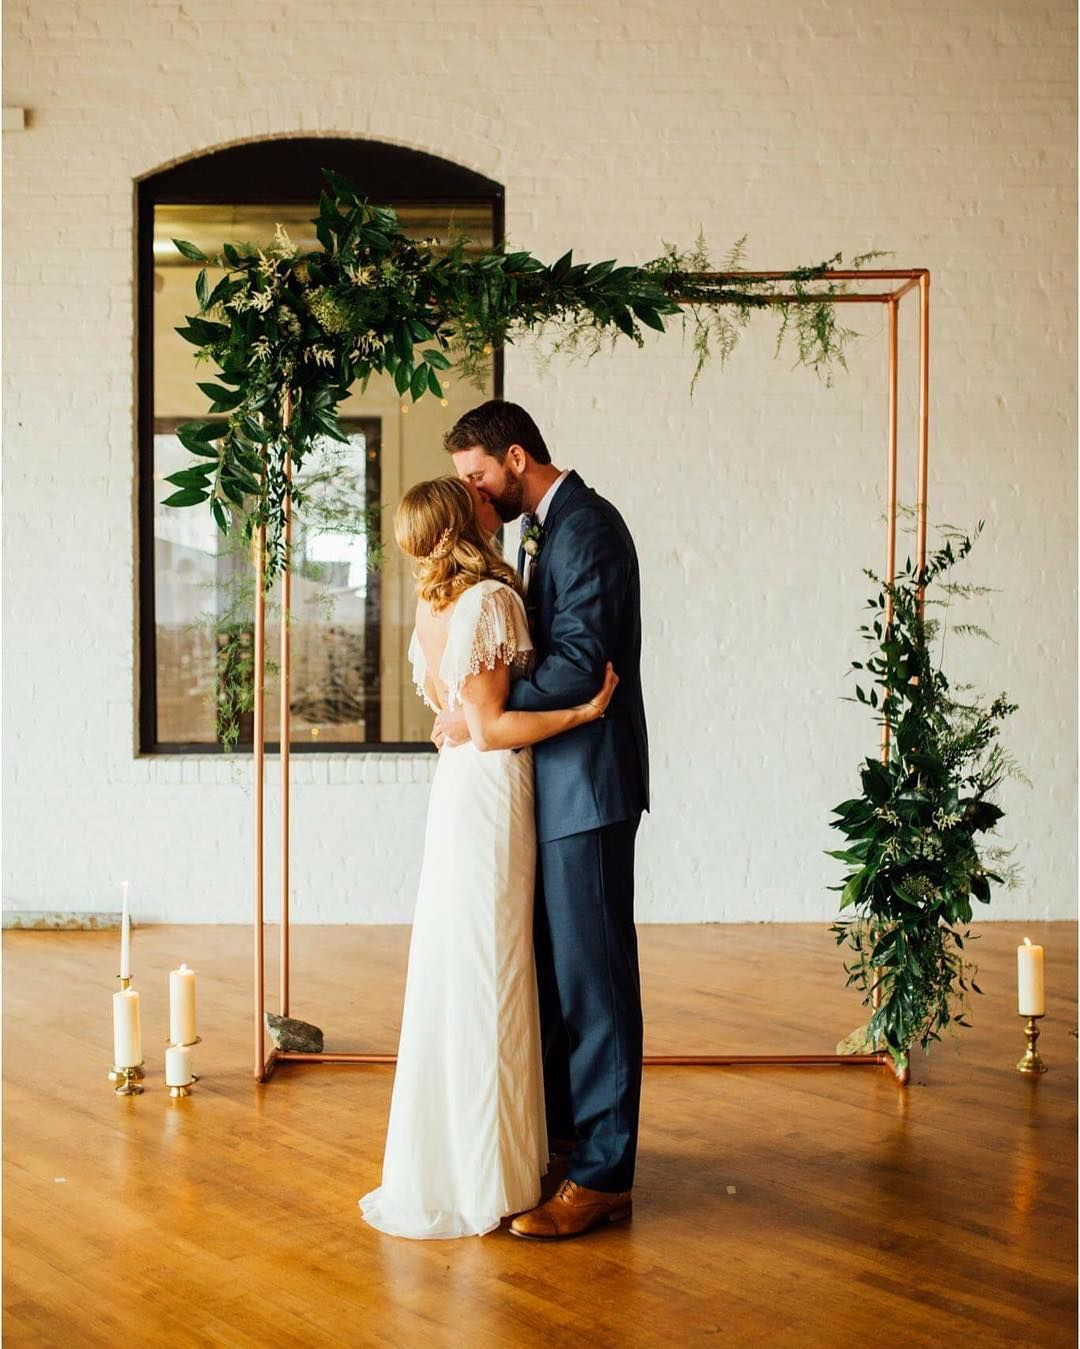 DIY Homemade Copper Piping Ceremony Backdrop With Greenery